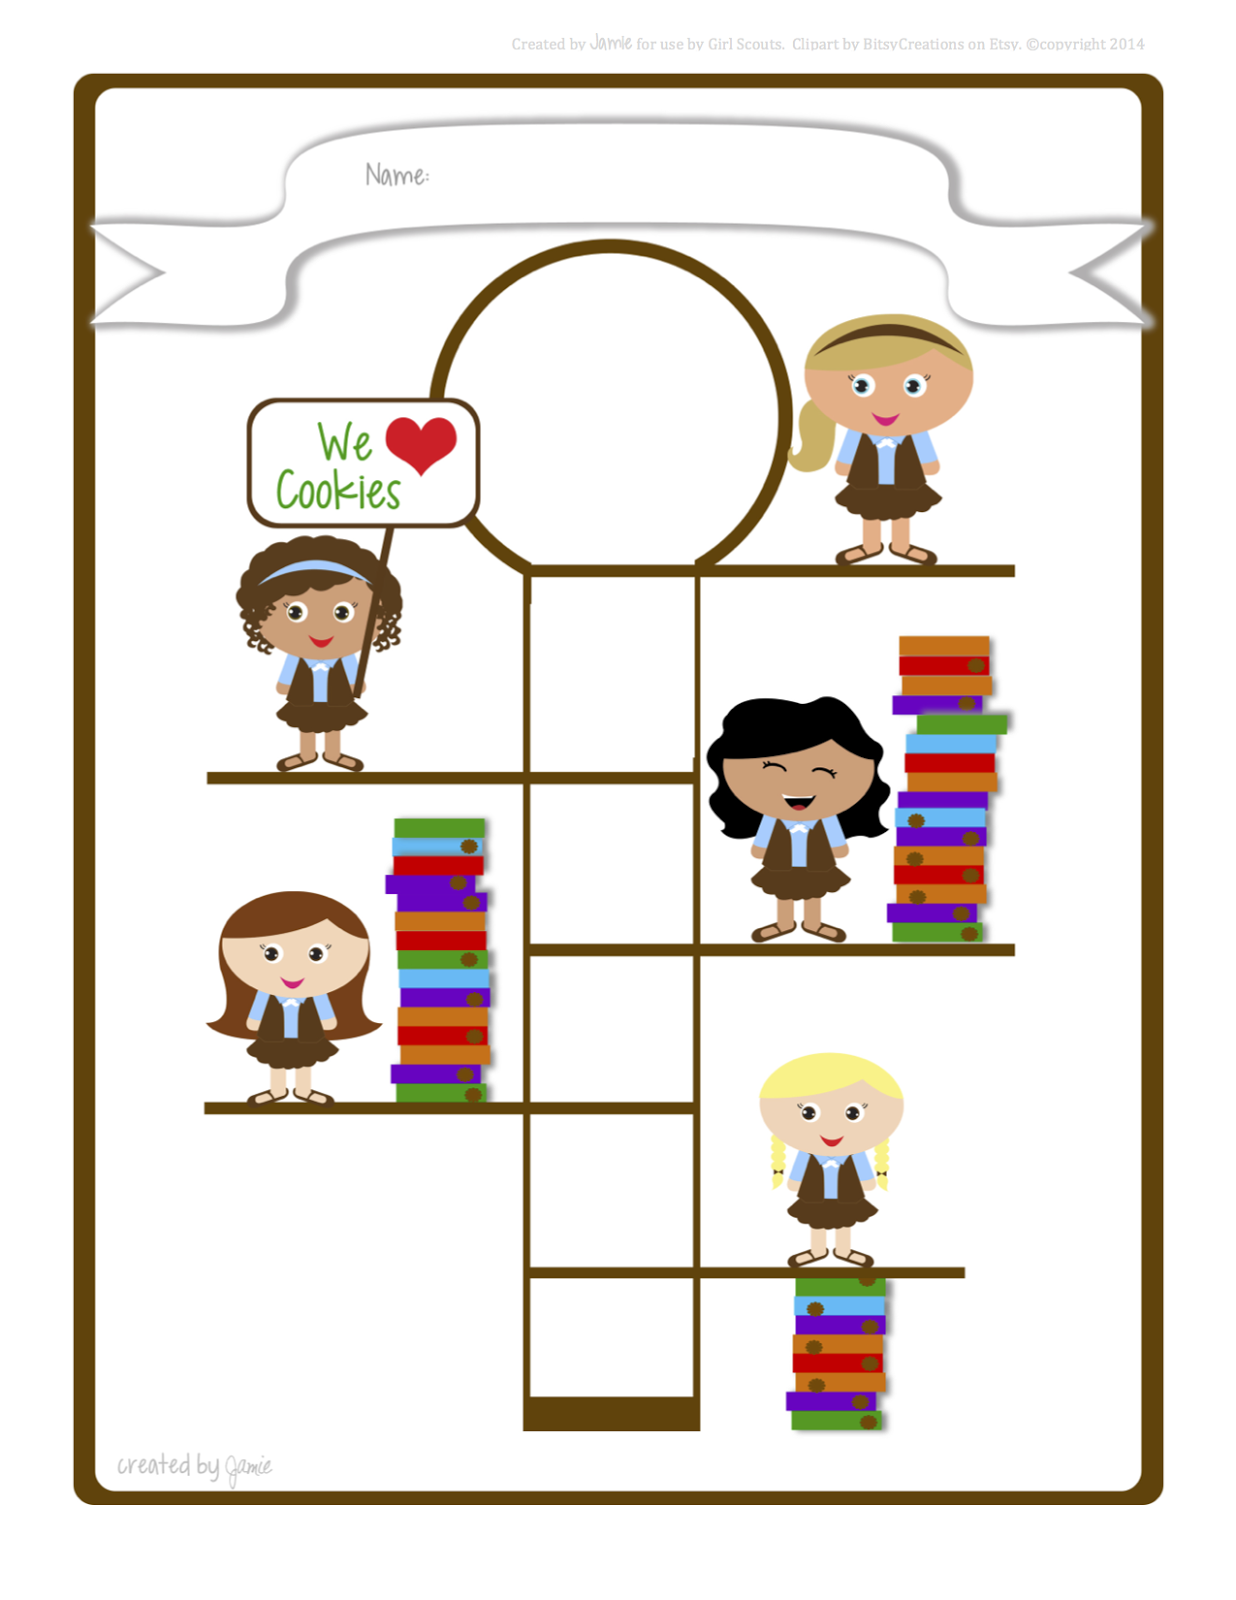 Cute girl scout juniors clipart not on pinterest image library library Girl Scout Brownie Images | Free download best Girl Scout ... image library library